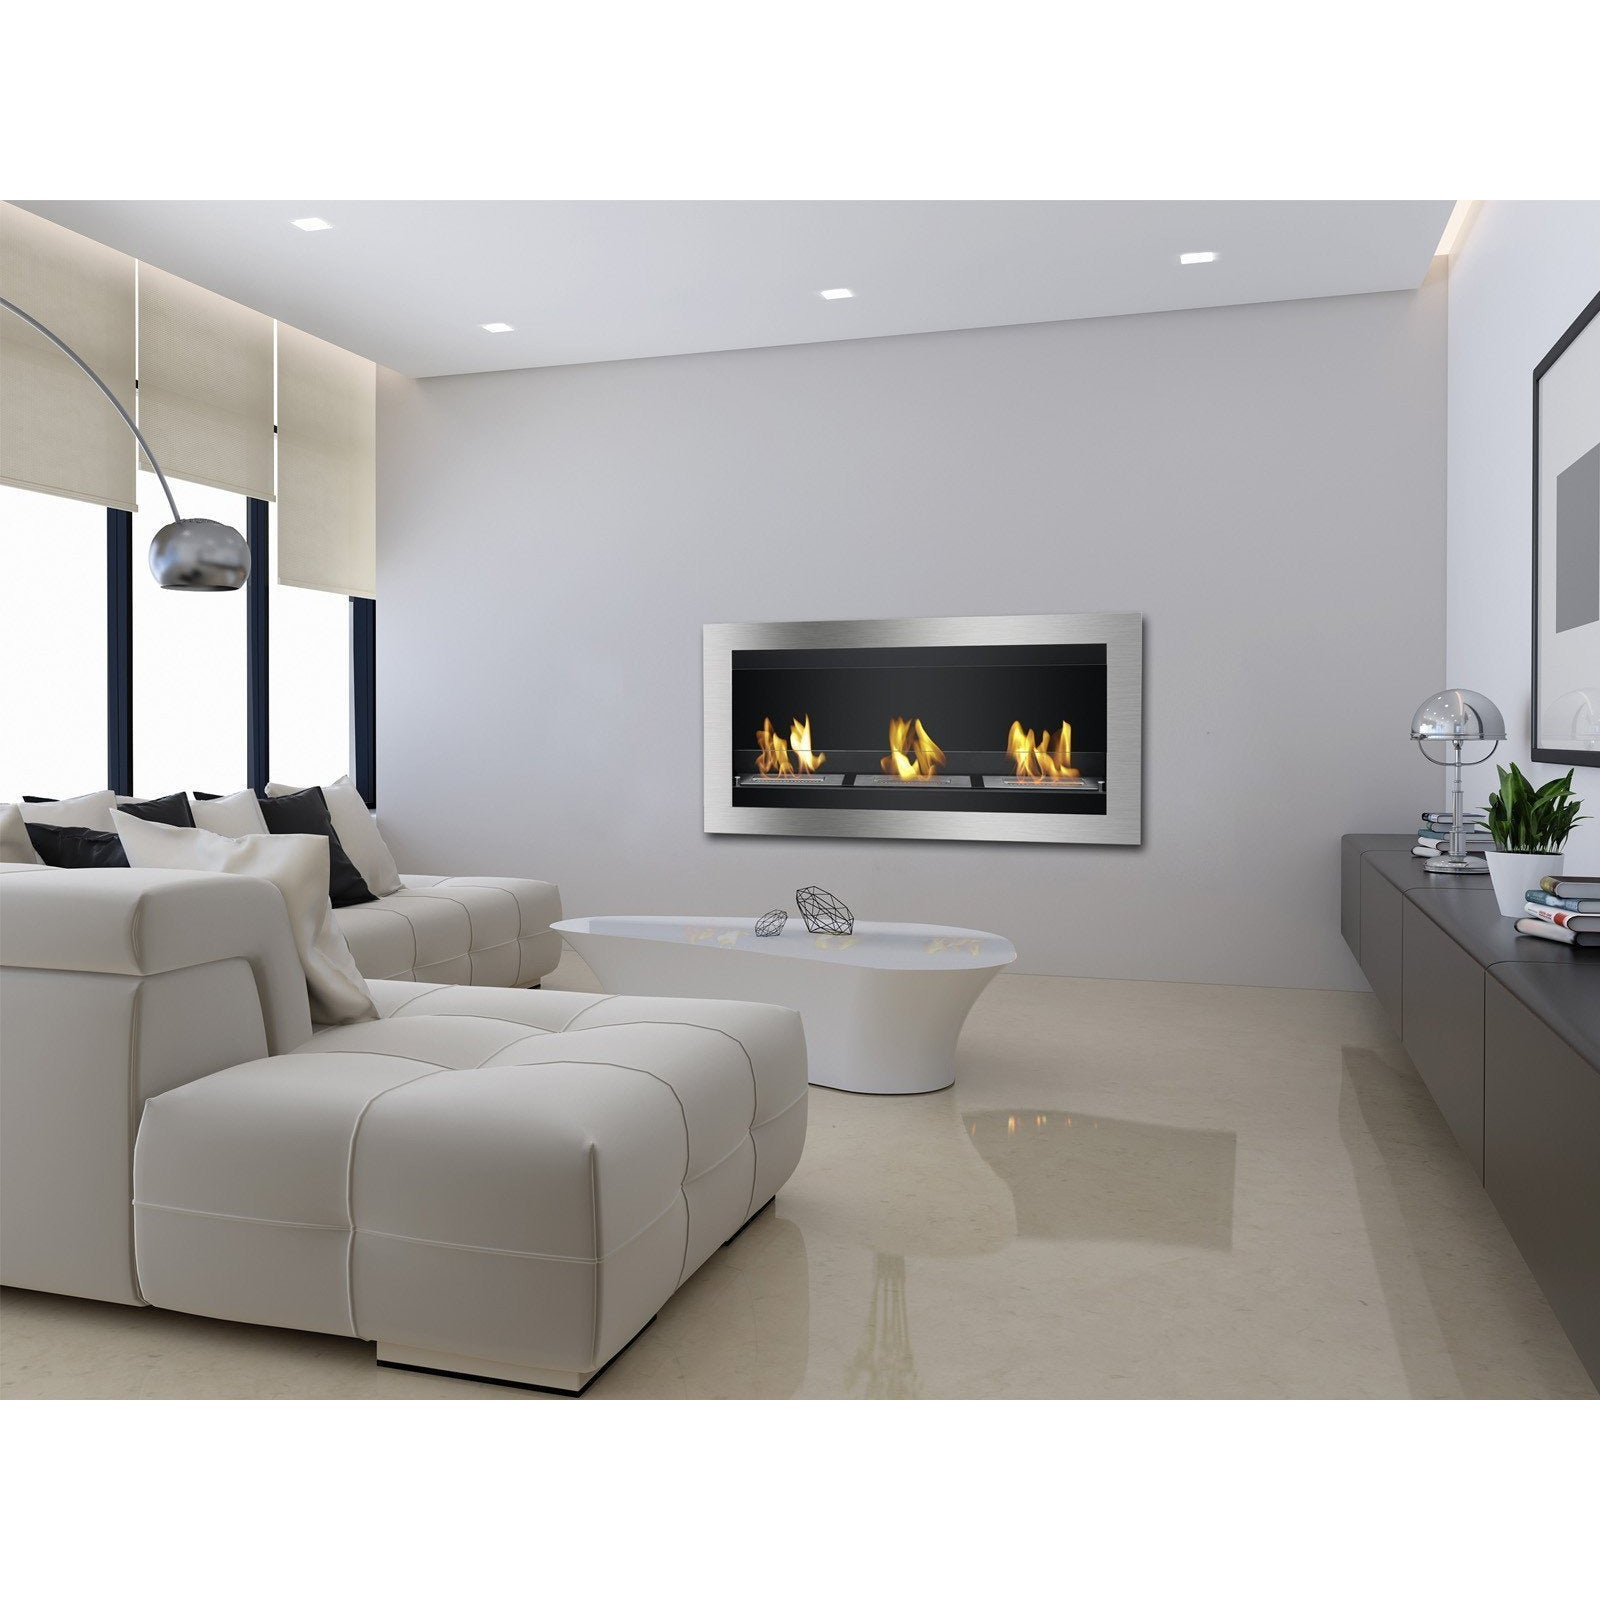 "Ethanol Fireplace - Ignis Magnum - 44"" Wall Mounted Ethanol Fireplace (WMF-010)"